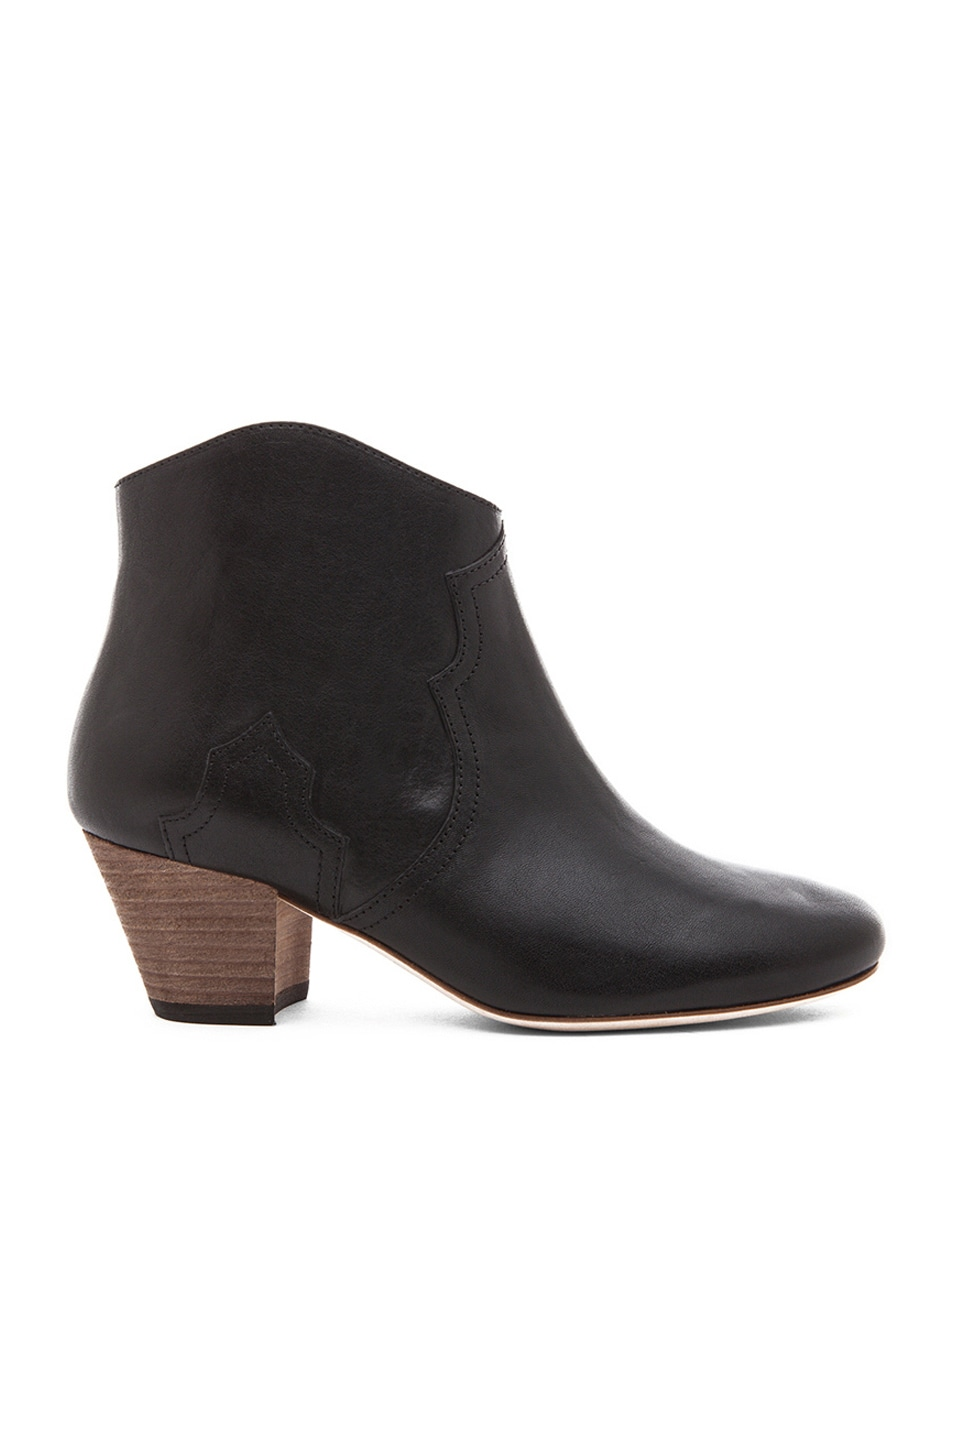 Image 1 of Isabel Marant Dicker Calfskin Leather Boots in Black